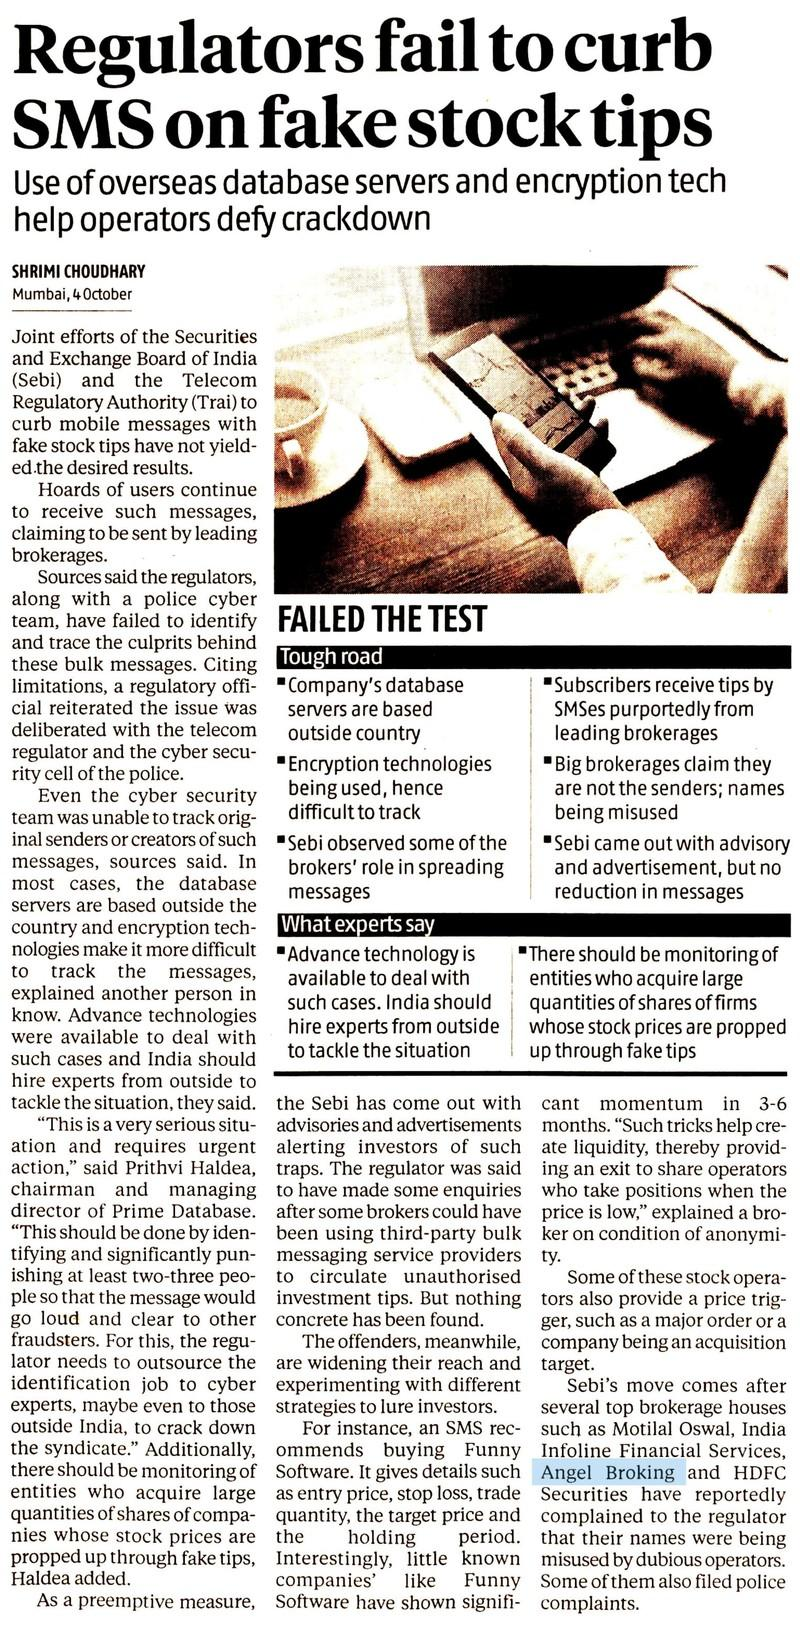 Regulators fail to curb SMS on fake stock tips